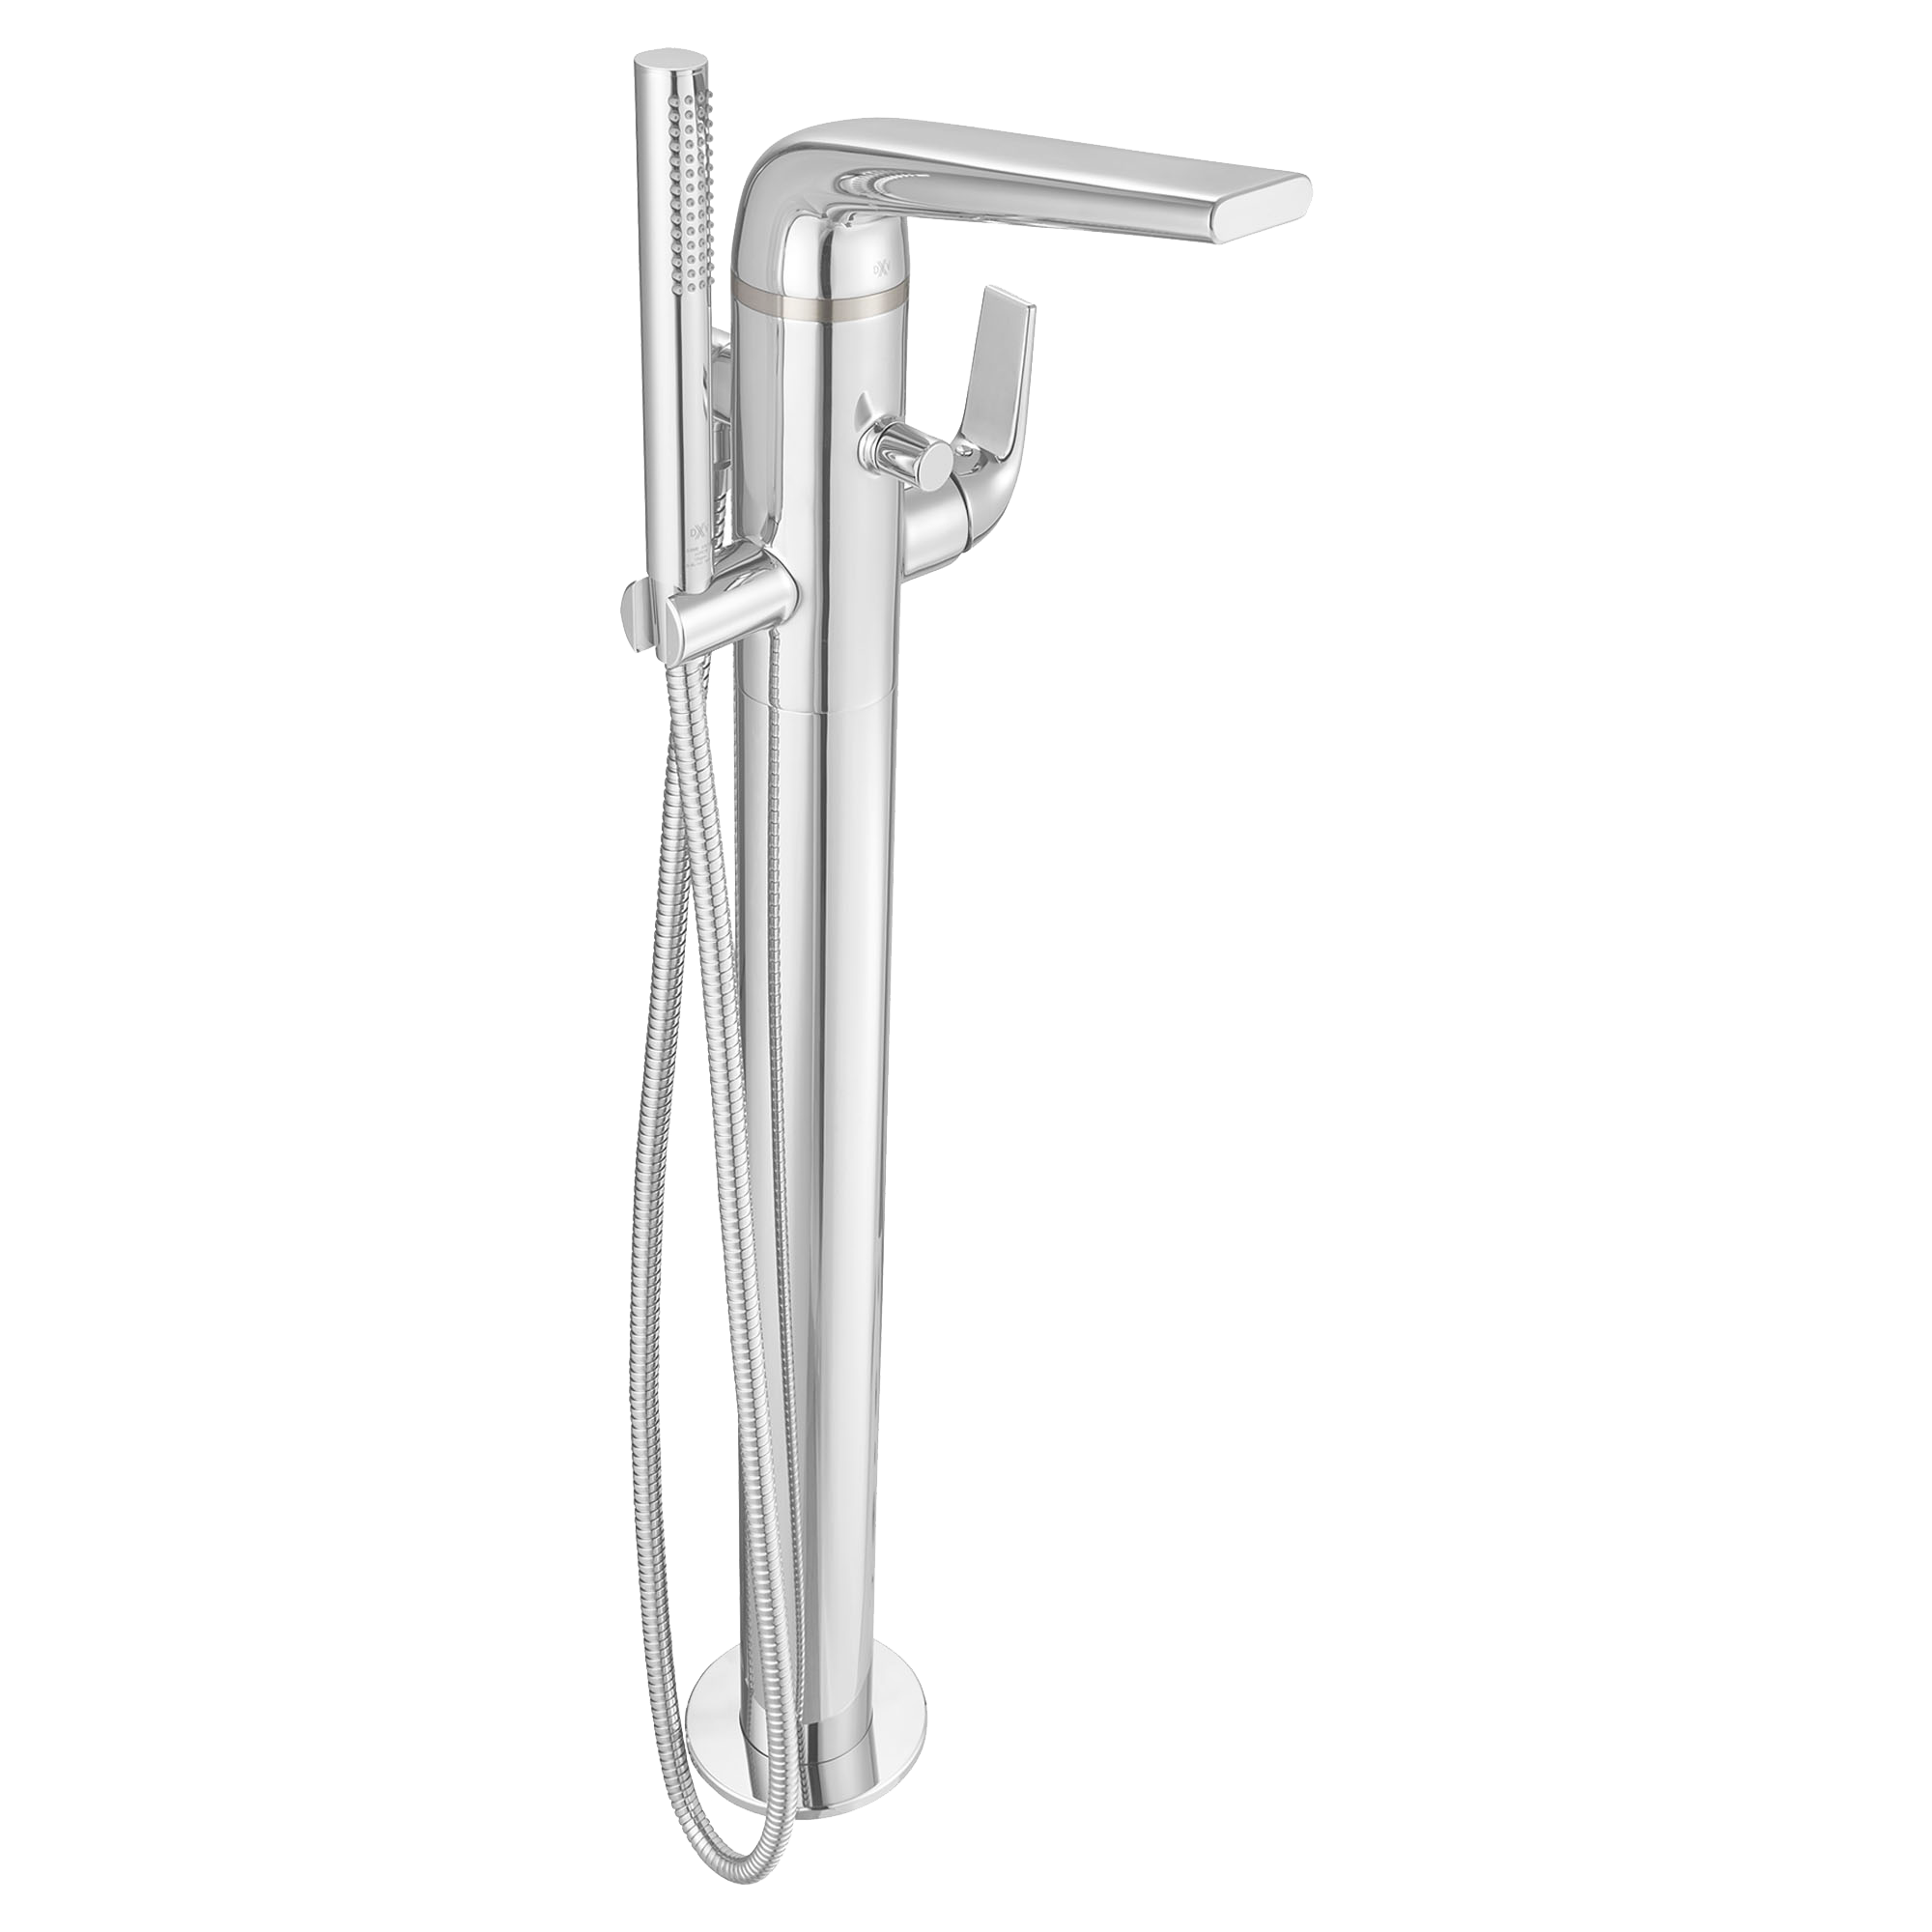 DXV Modulus Floor Mount Tub Filler | DXV